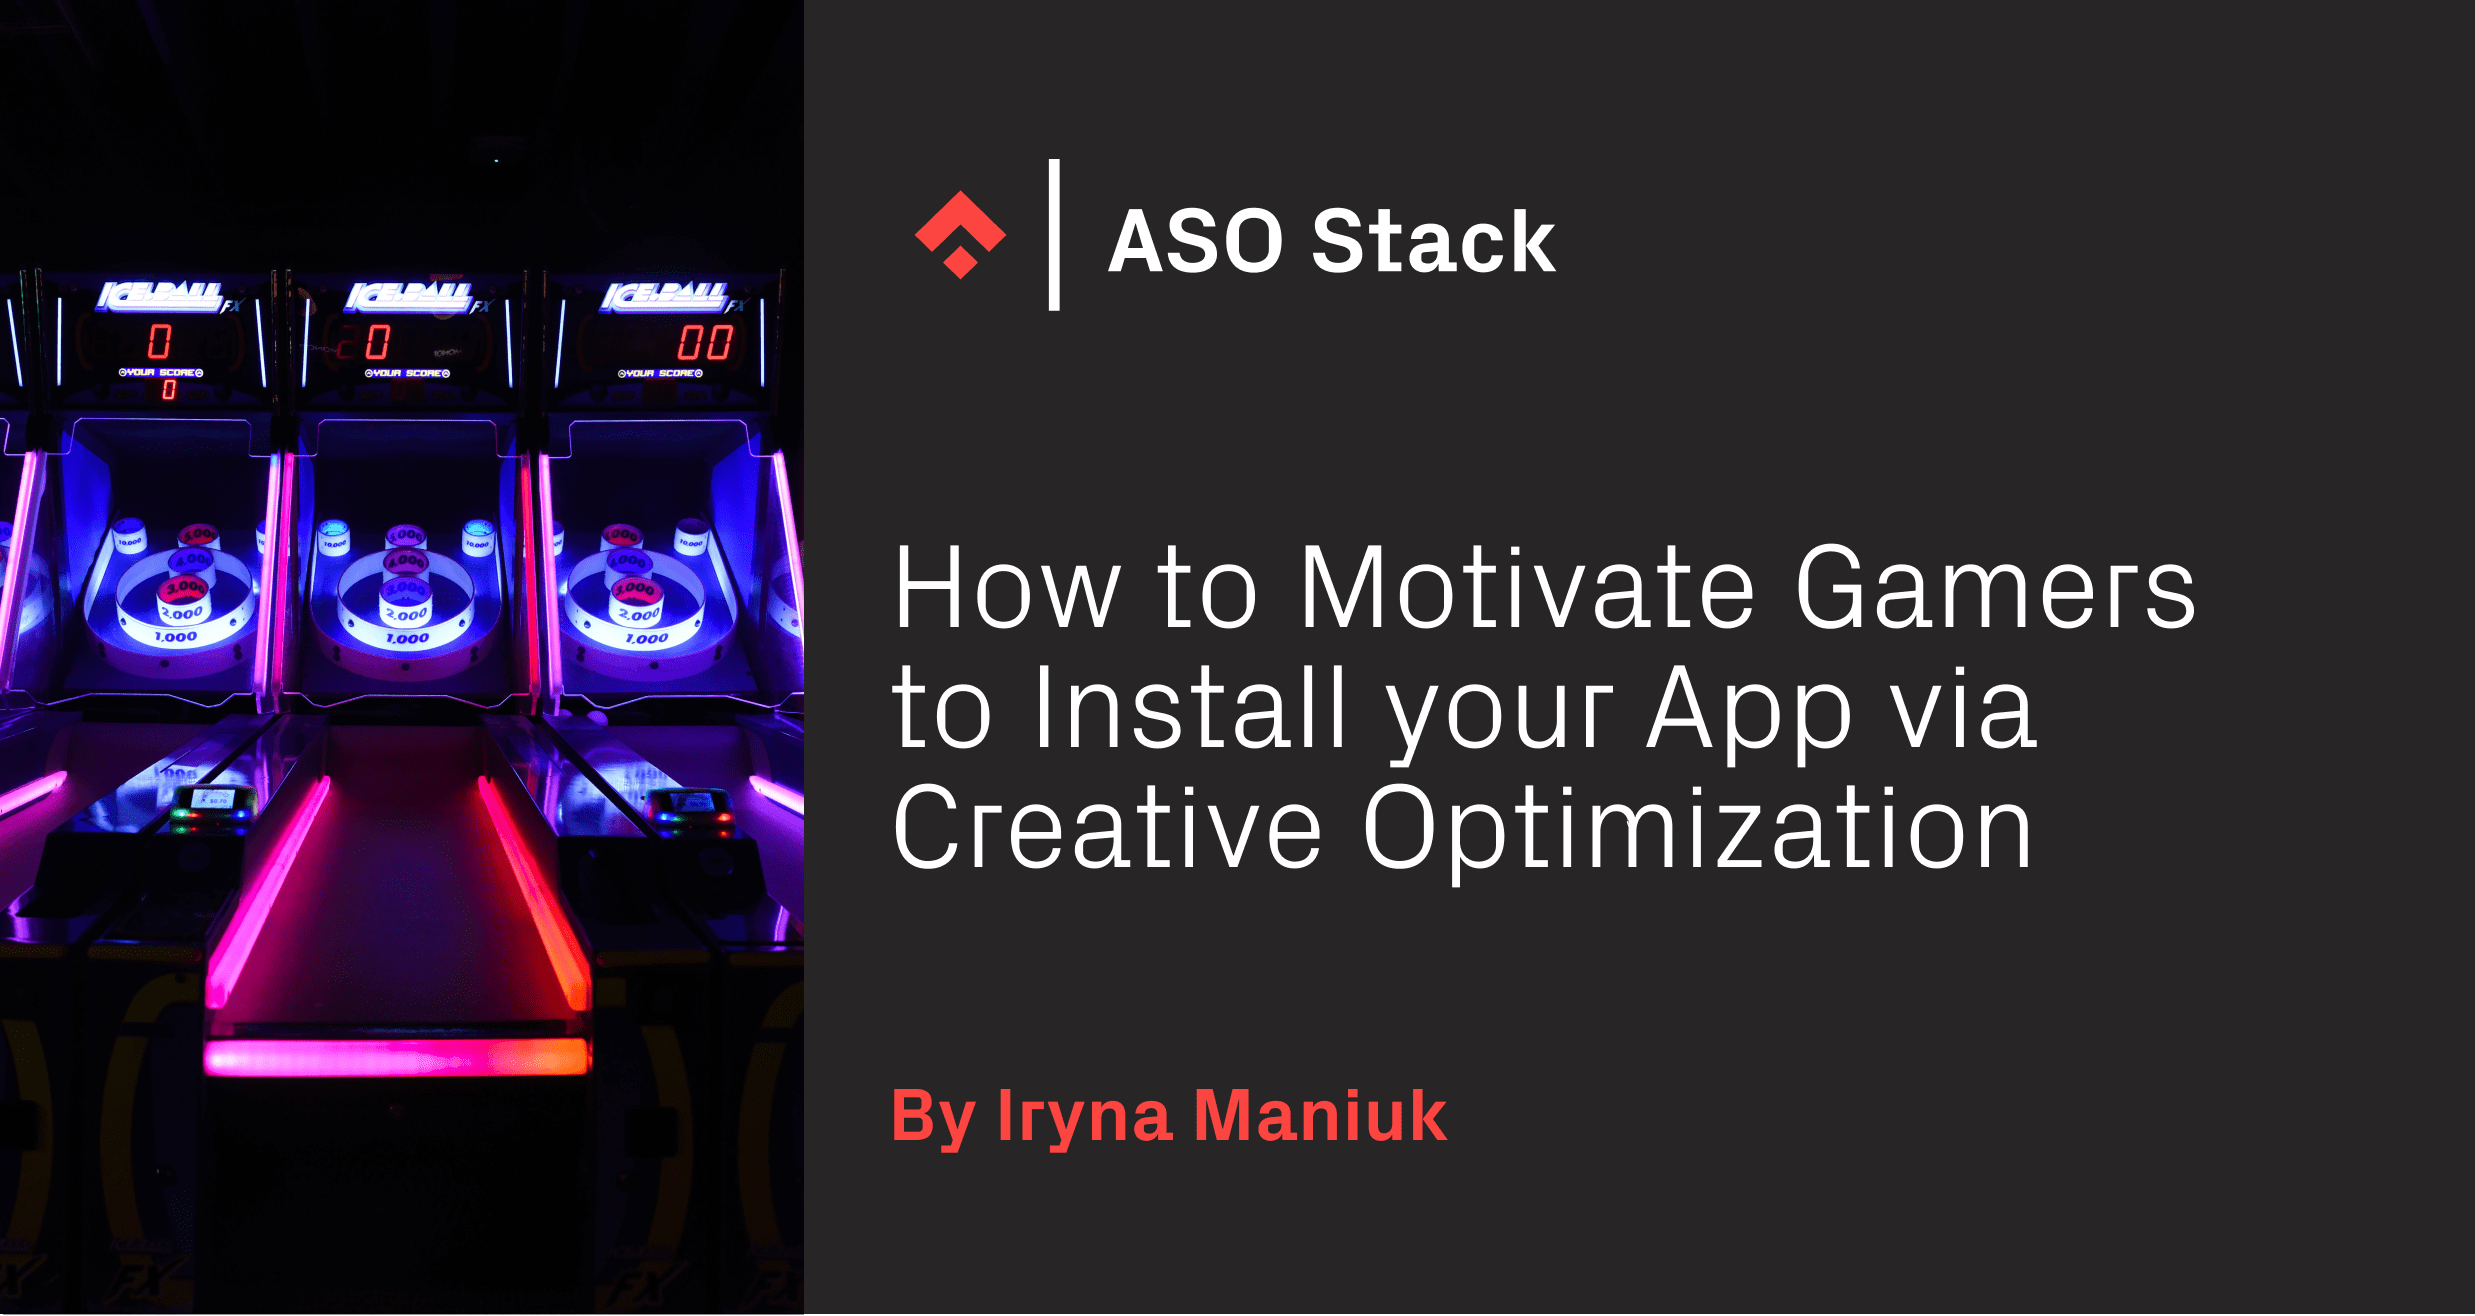 How to Motivate Gamers to Install your App via Creative Optimization